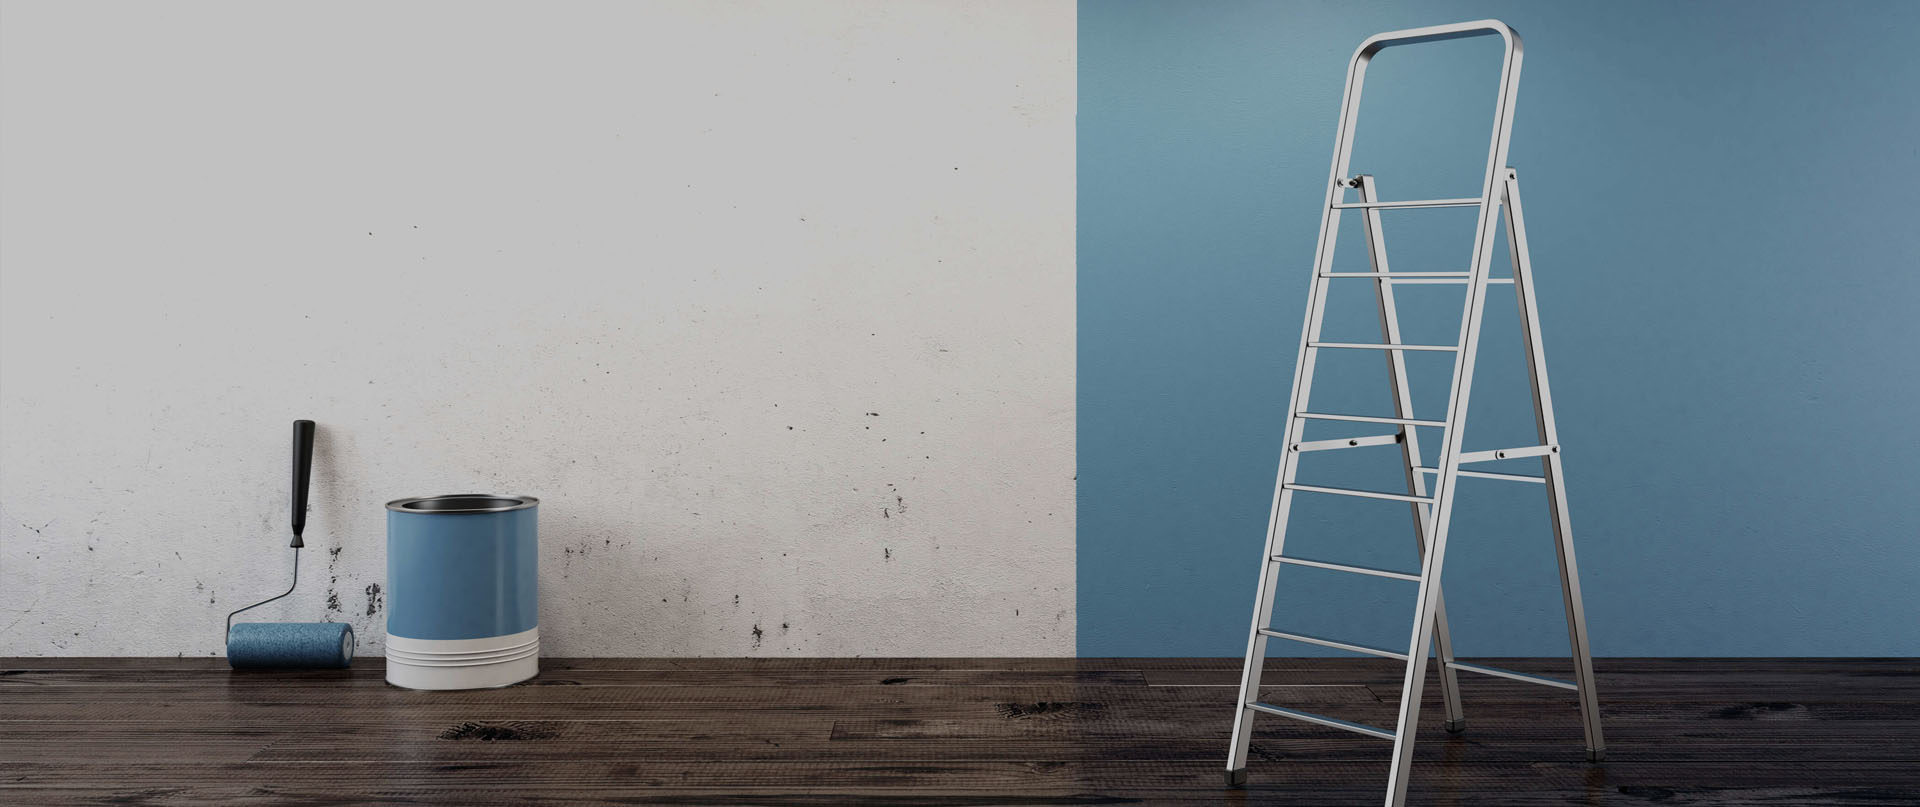 A1 Painting Services